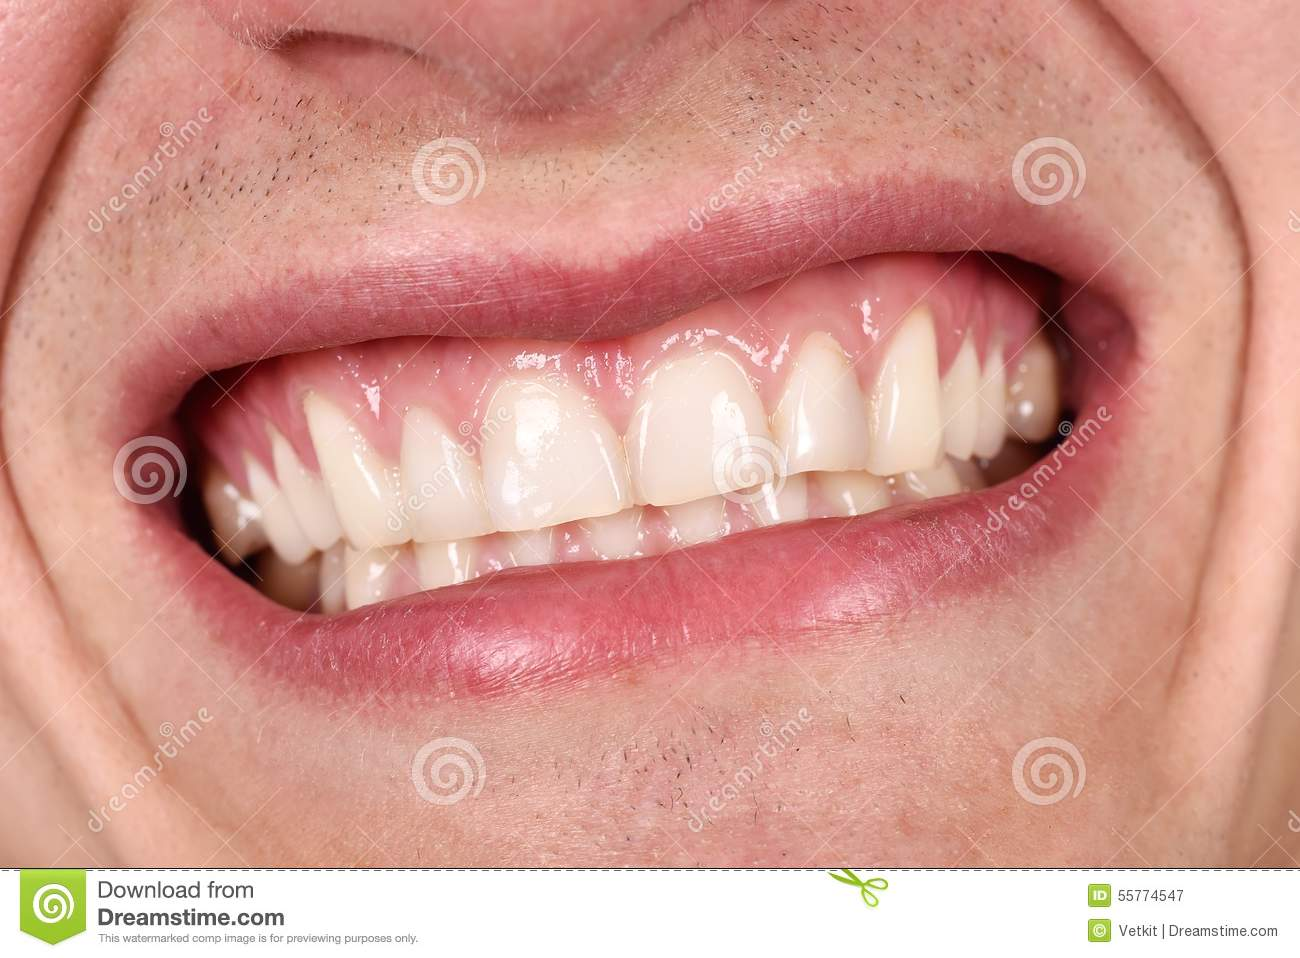 male-mouth-laughing-showing-his-teeth-close-up-55774547.jpg